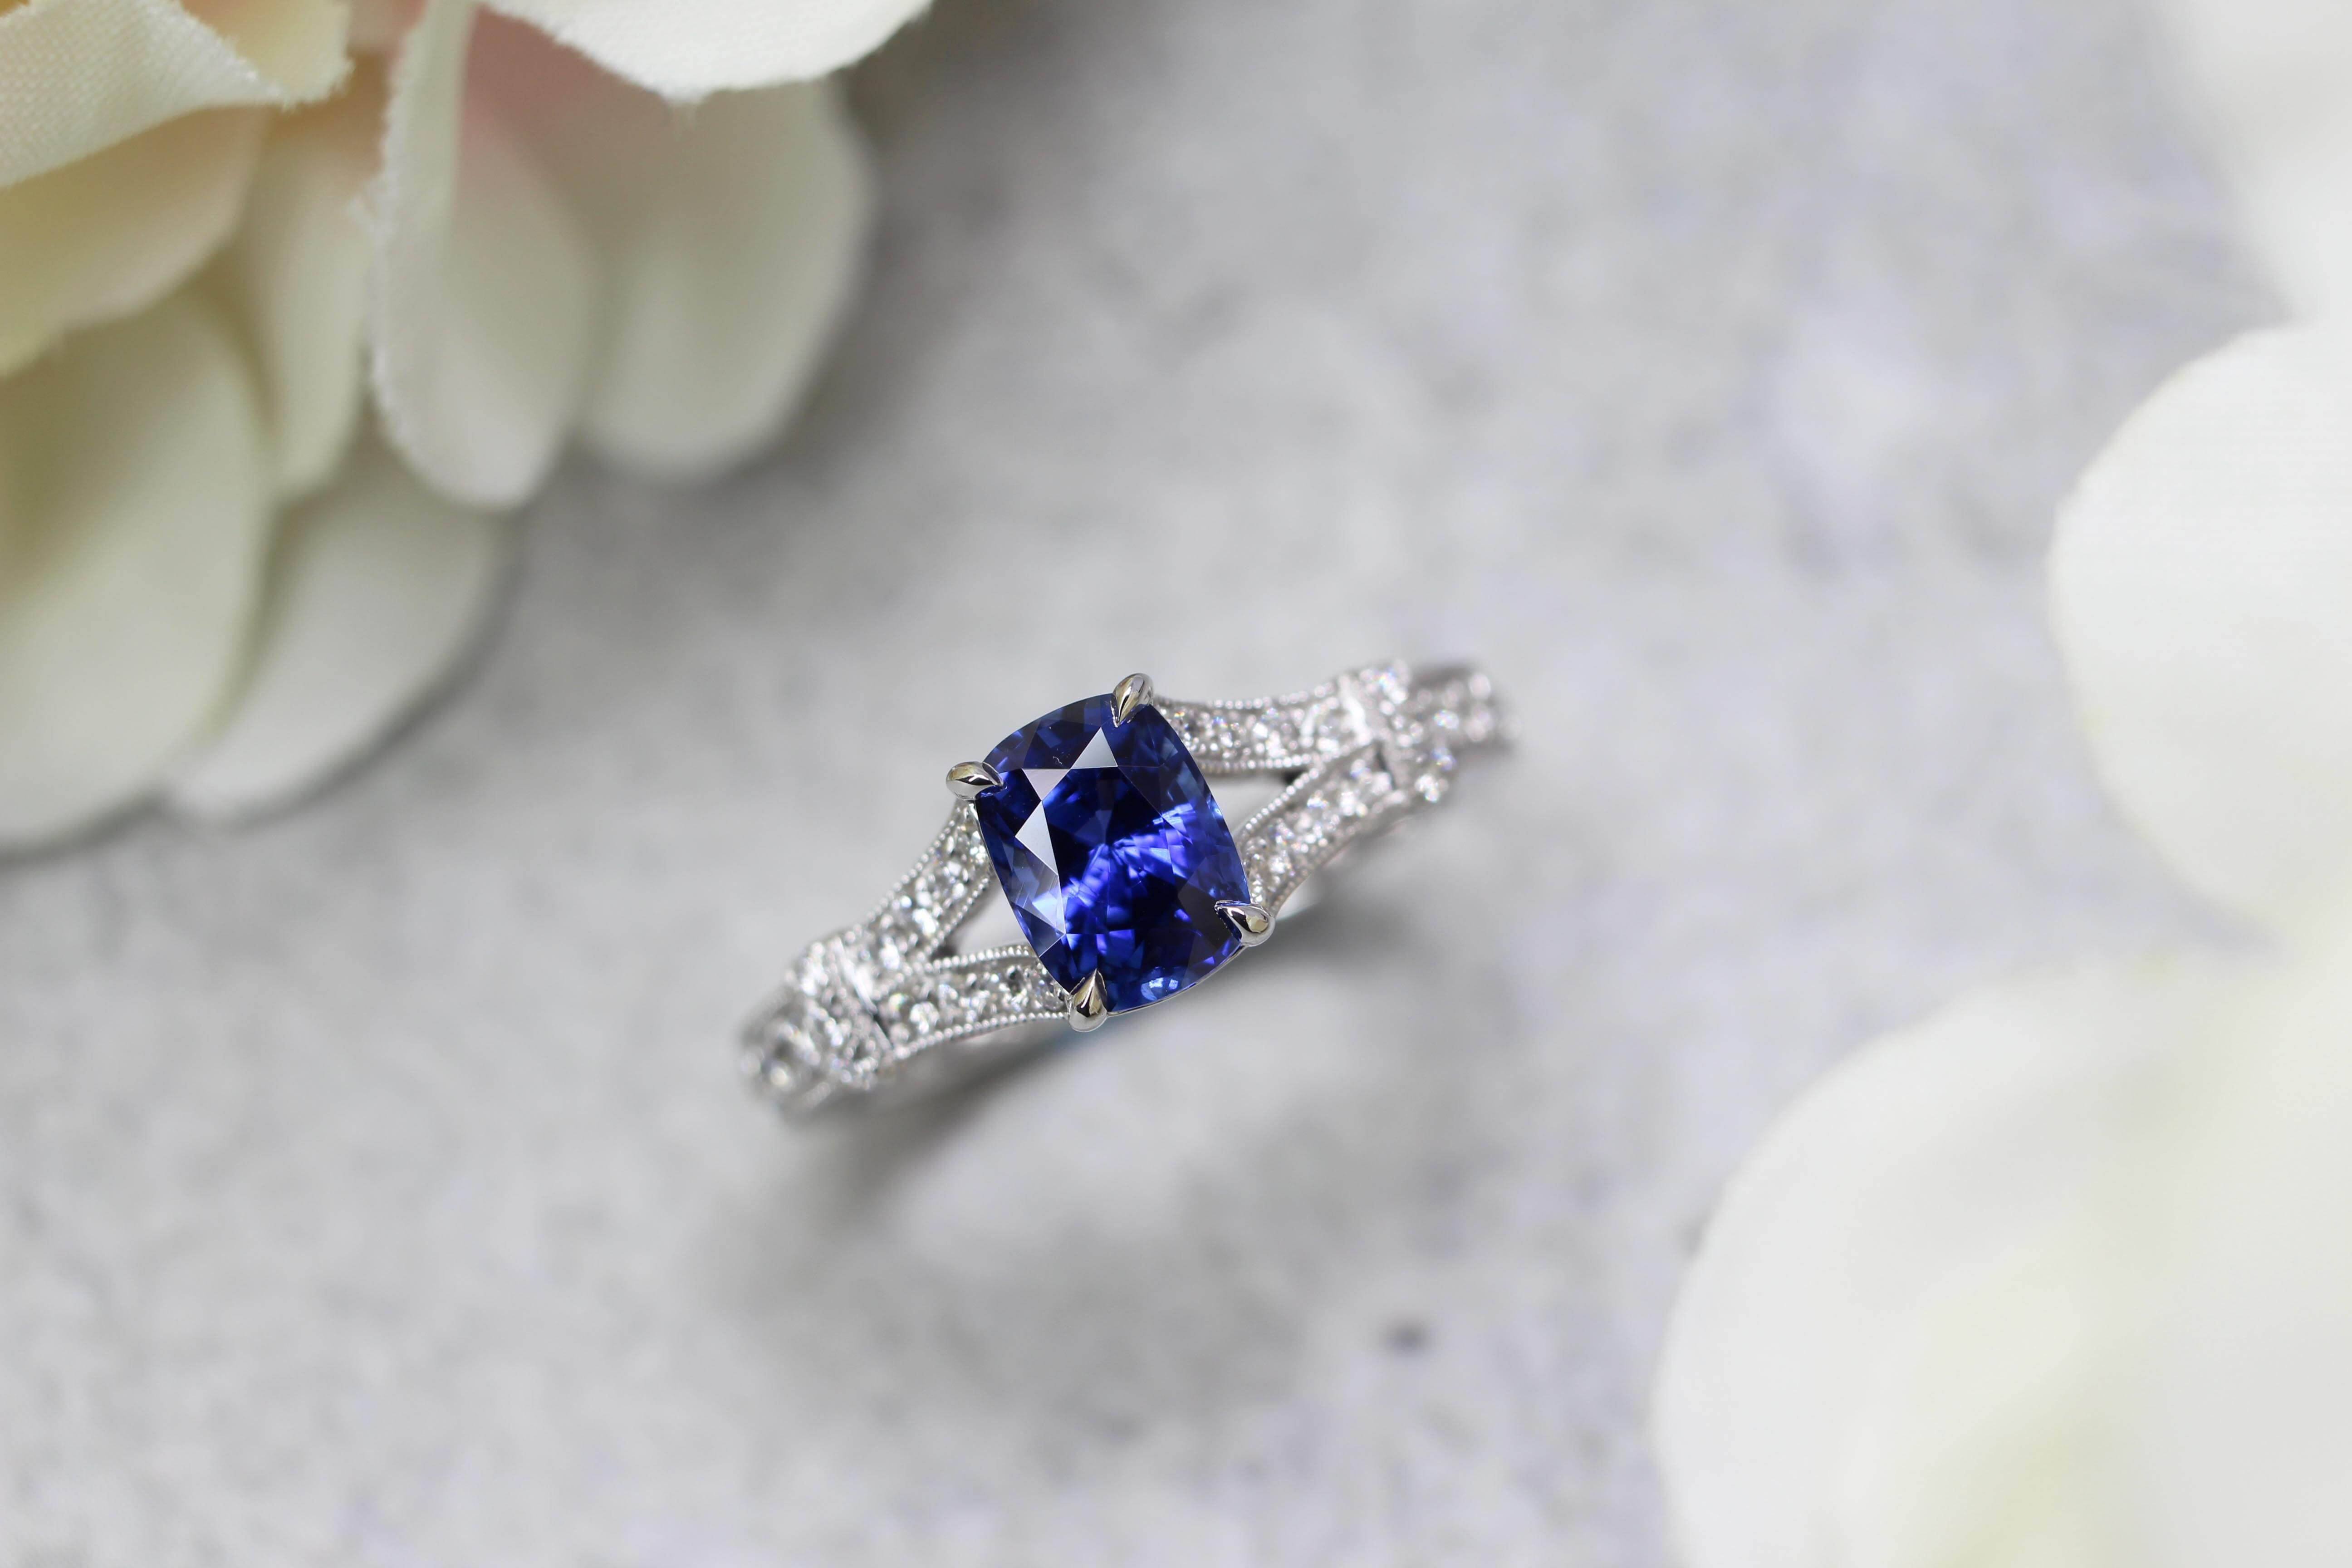 Eiffel Tower Blue Sapphire Engagement Ring - customised to eiffel tower on the band of the engagement ring with blue sapphire | Local Singapore Private Jeweller in customised wedding jewellery